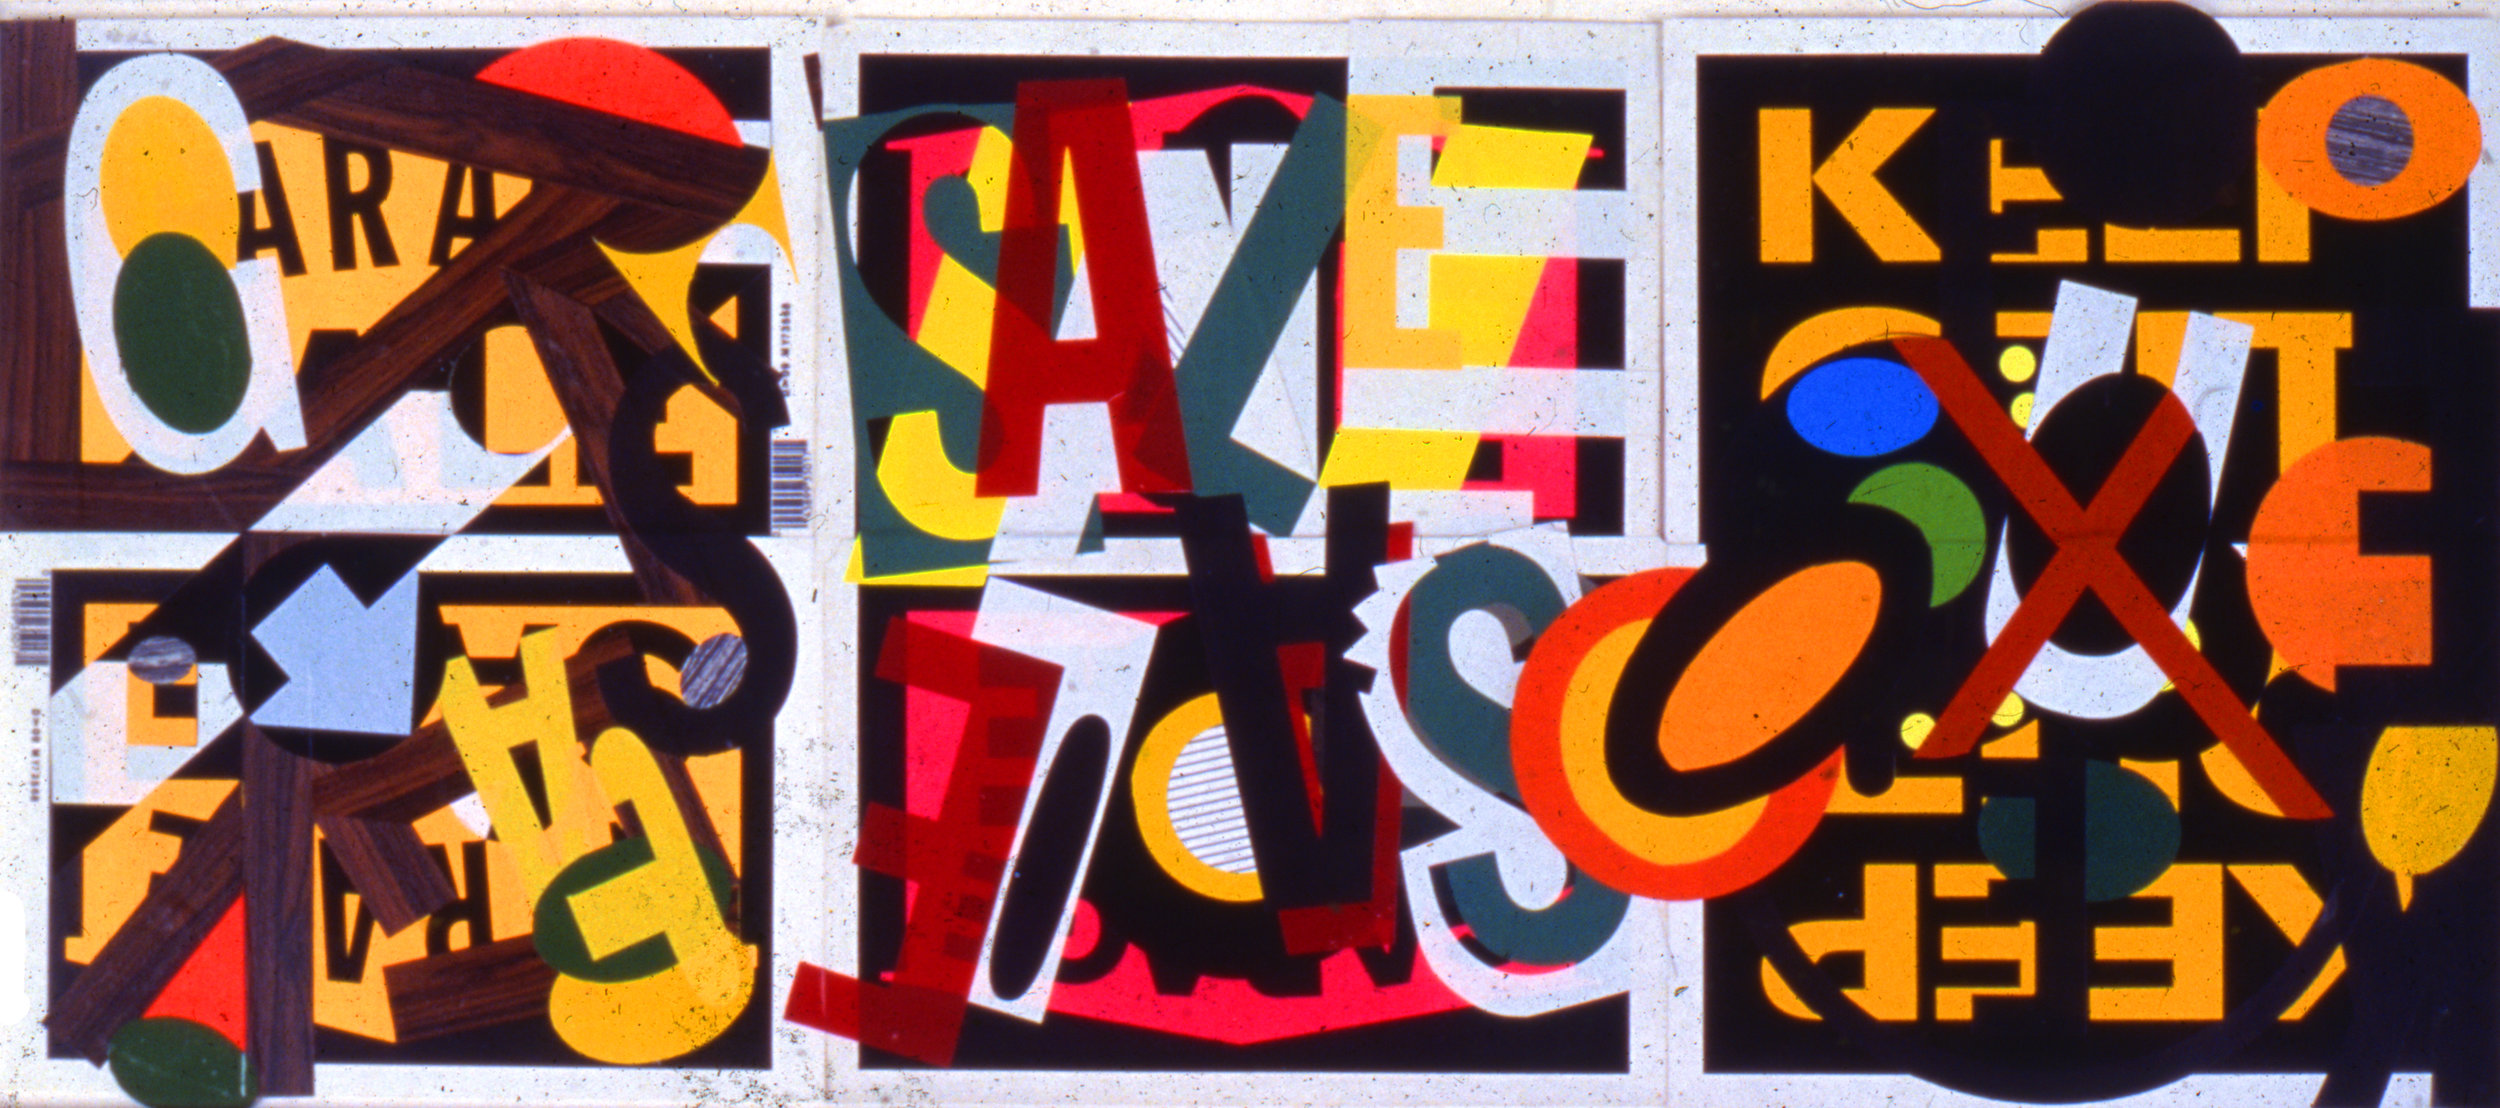 Untitled (signs), 1986